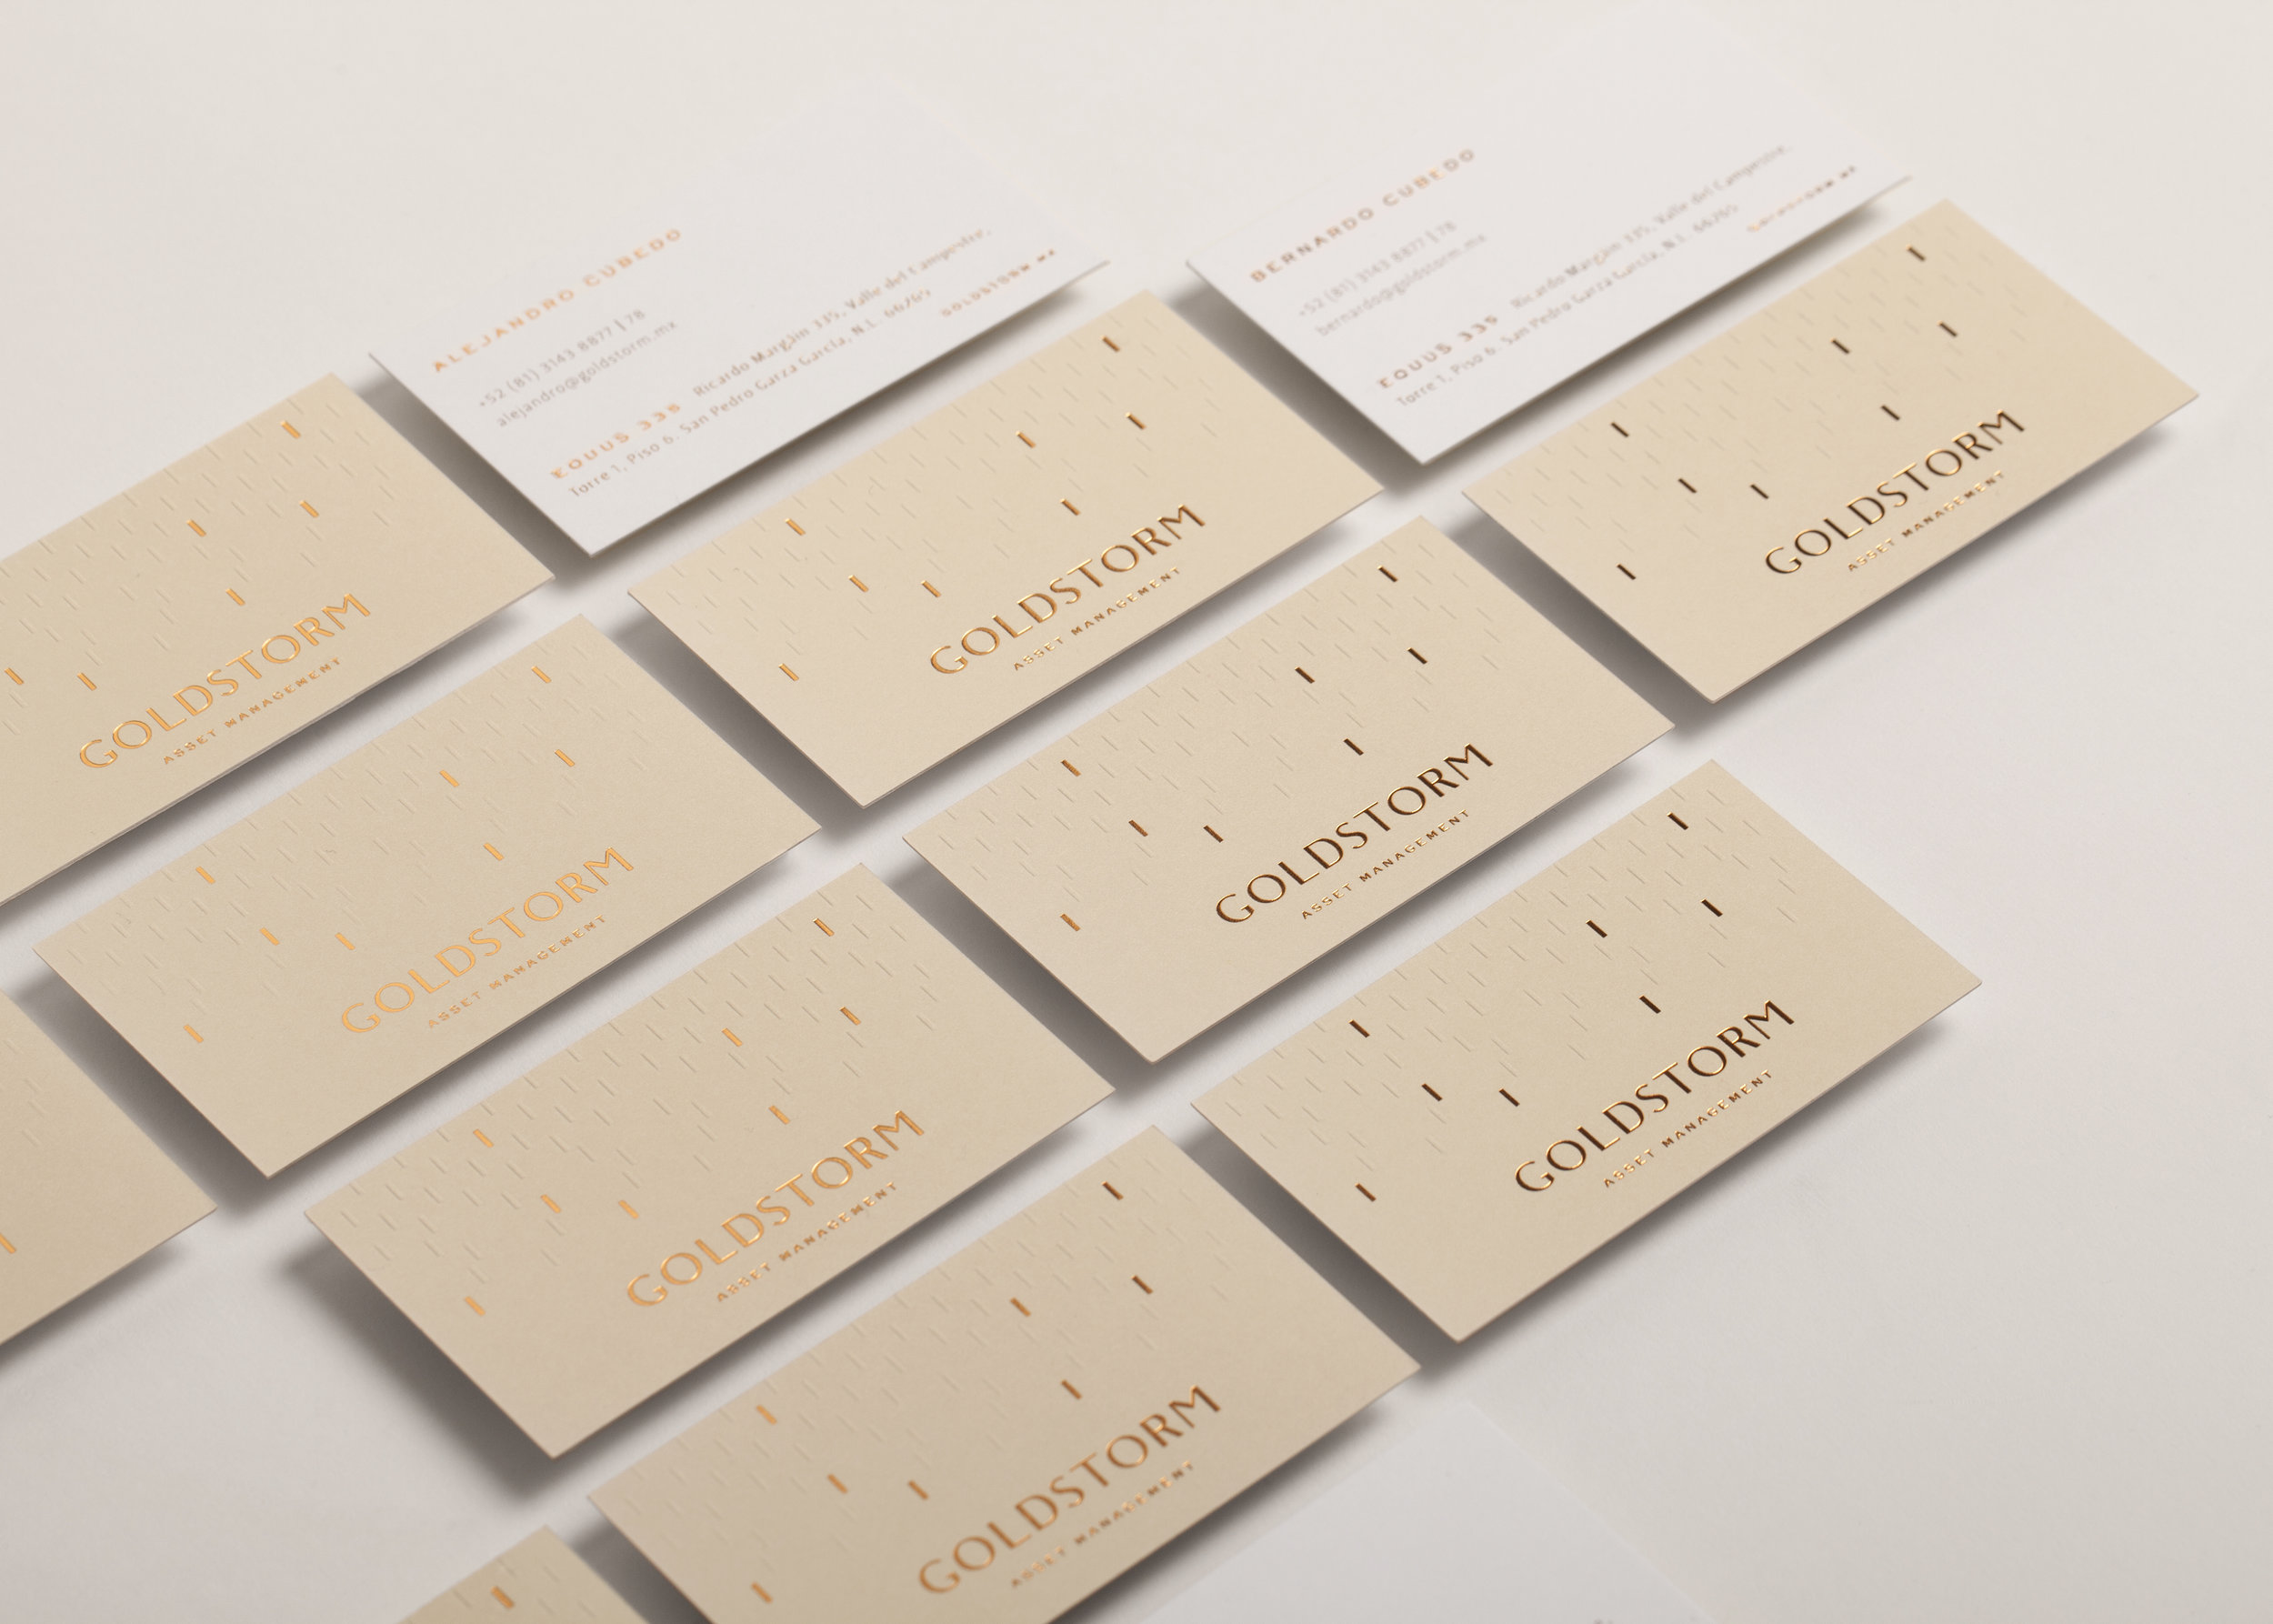 Goldstorm by LAT | A Creative Company